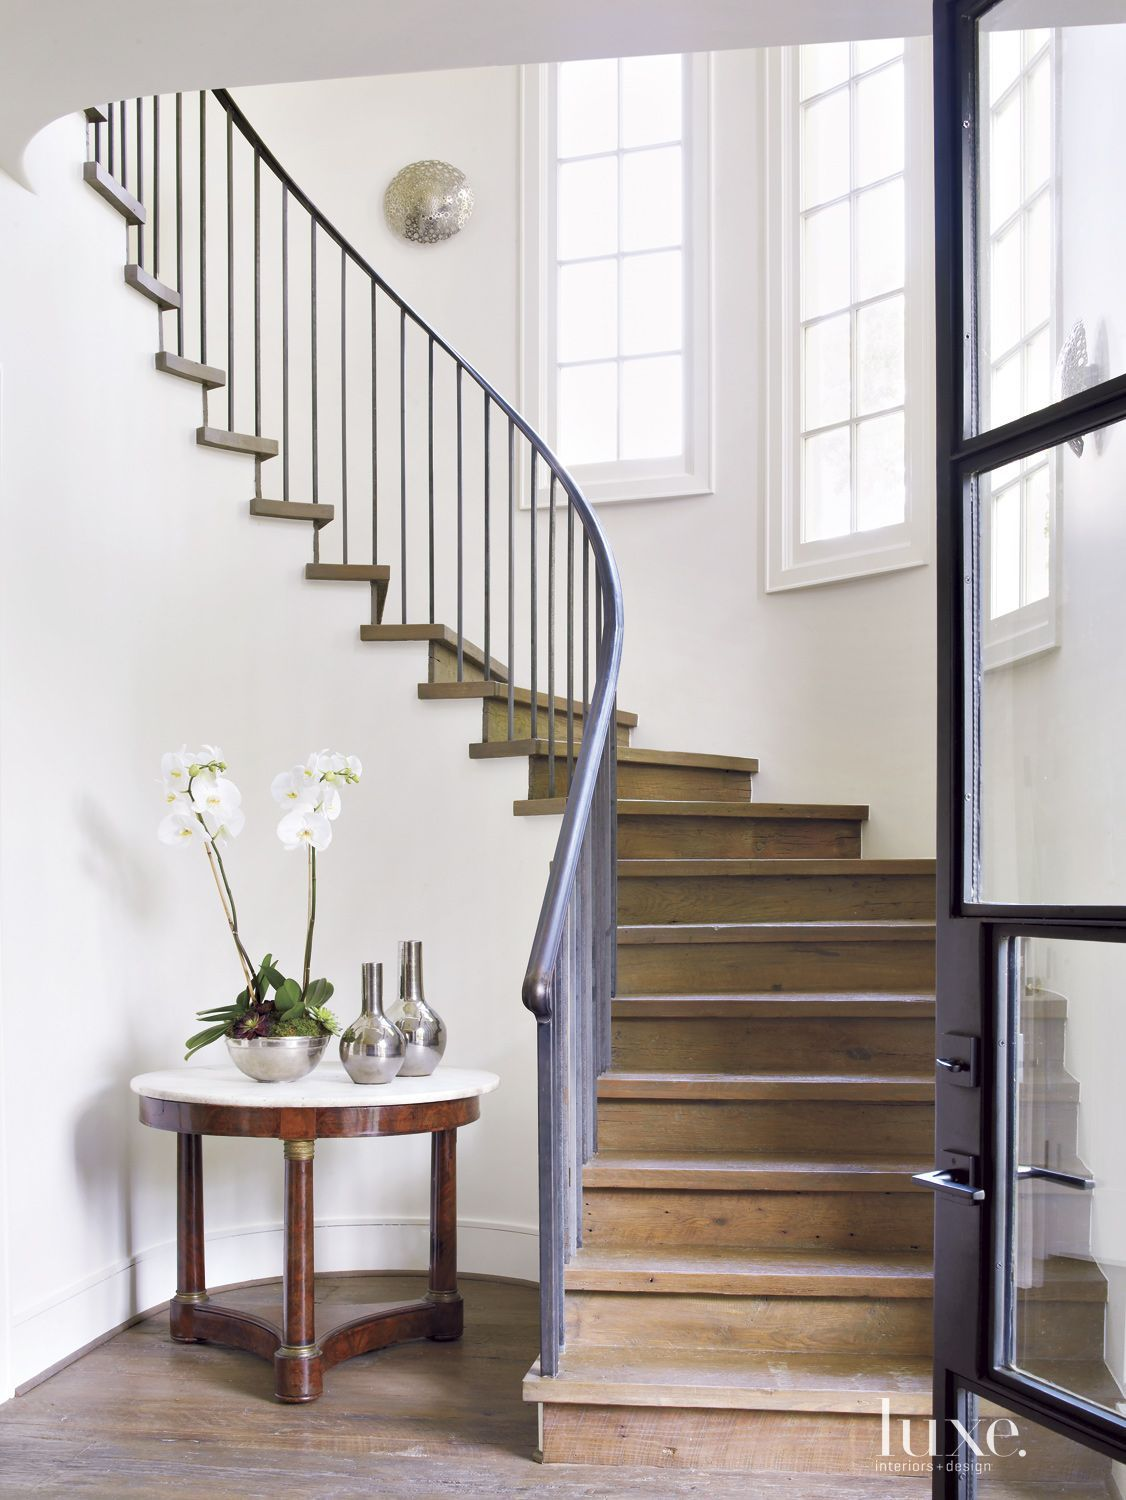 18 Exterior Railing Designs Ideas: 18 Houston Homes With Timeless Design In 2019